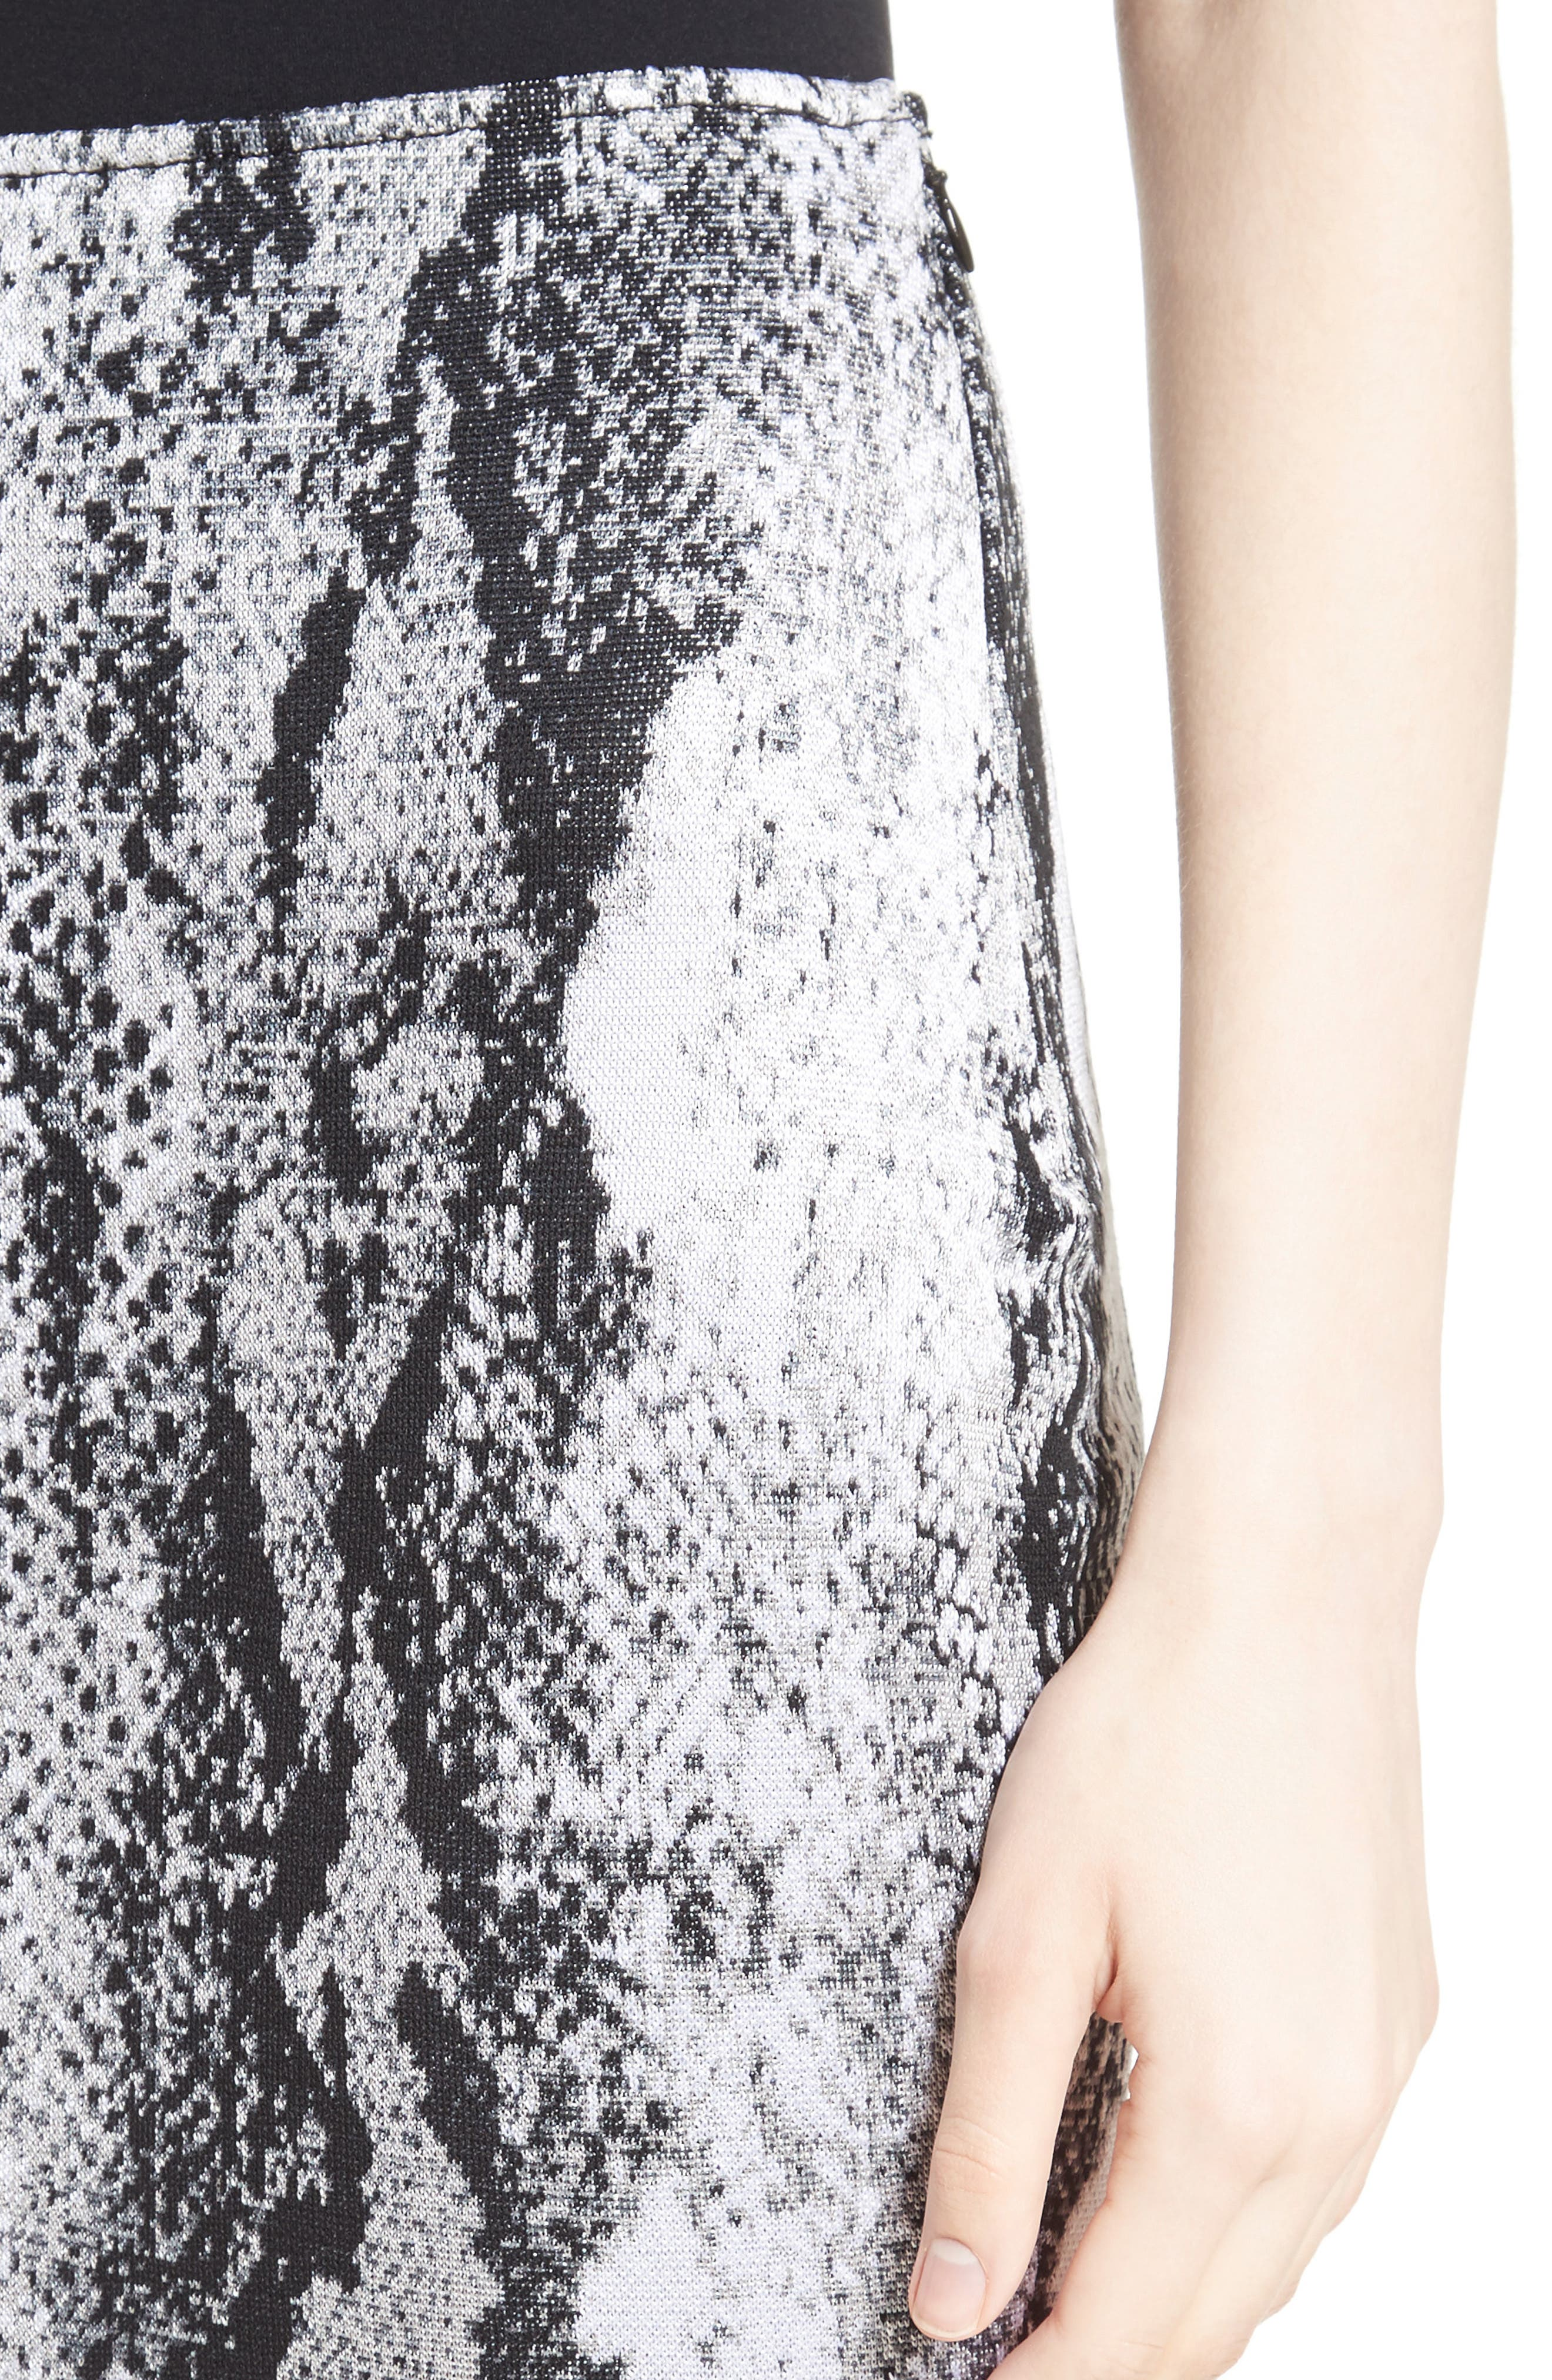 Raja Snakeskin Knit Pencil Skirt,                             Alternate thumbnail 4, color,                             050